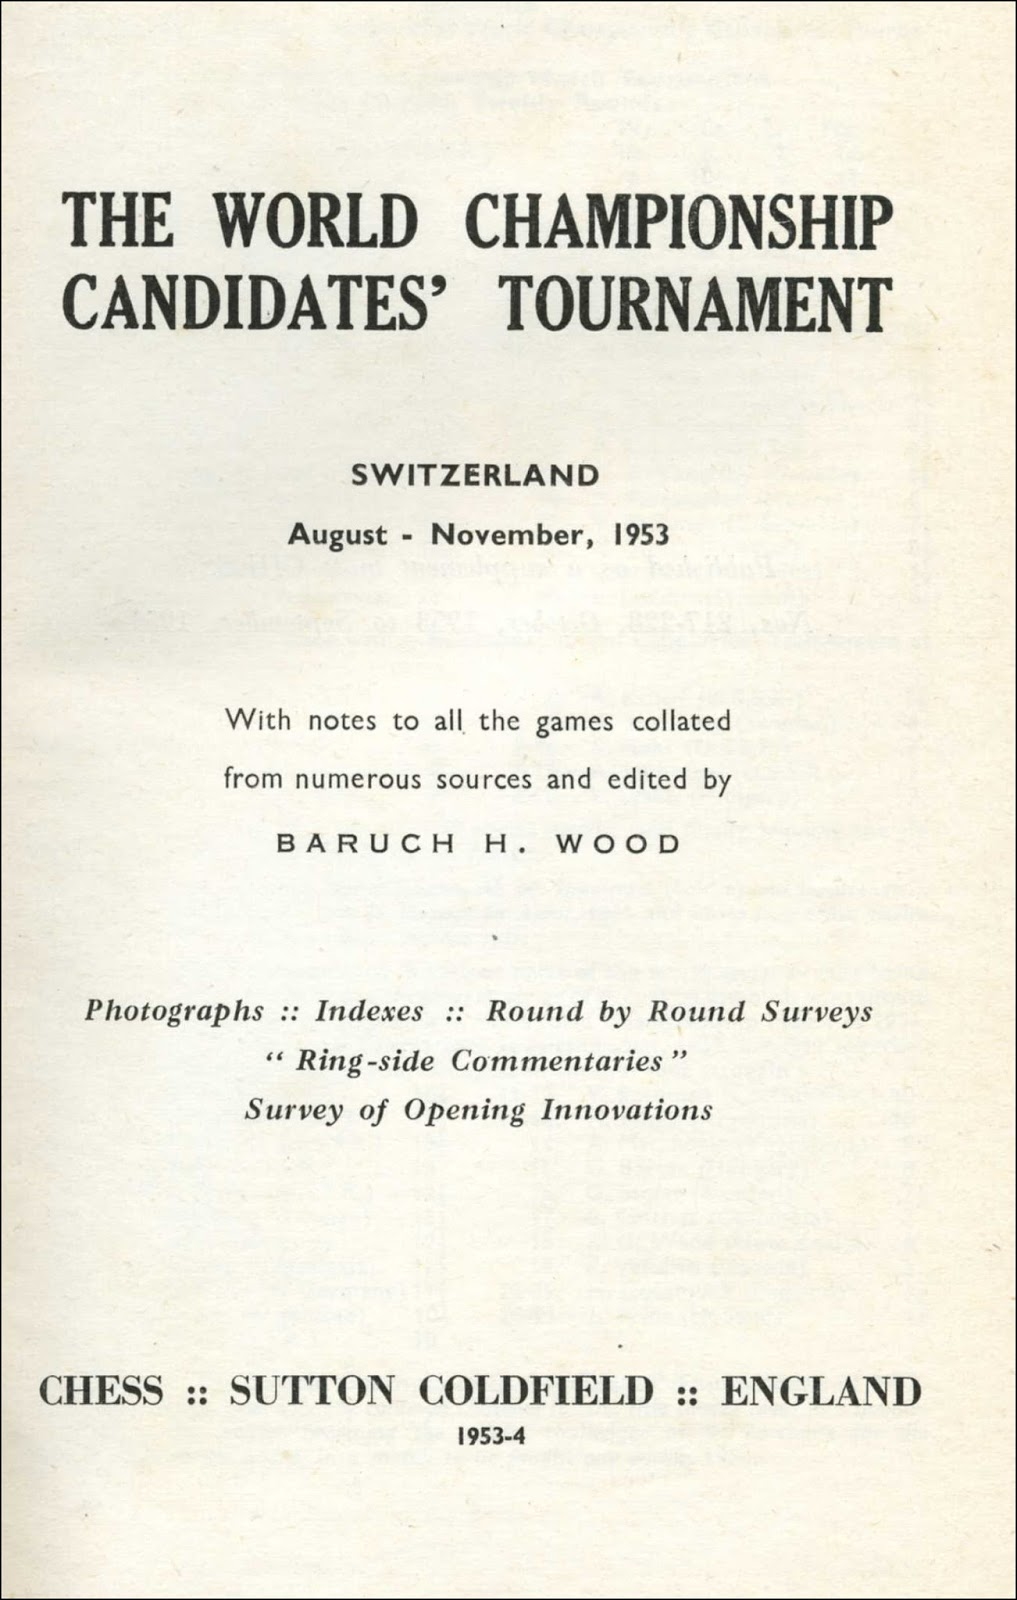 World Championship Candidates Tournament 1953, BH Wood, CHESS, Sutton Coldfield, 1954